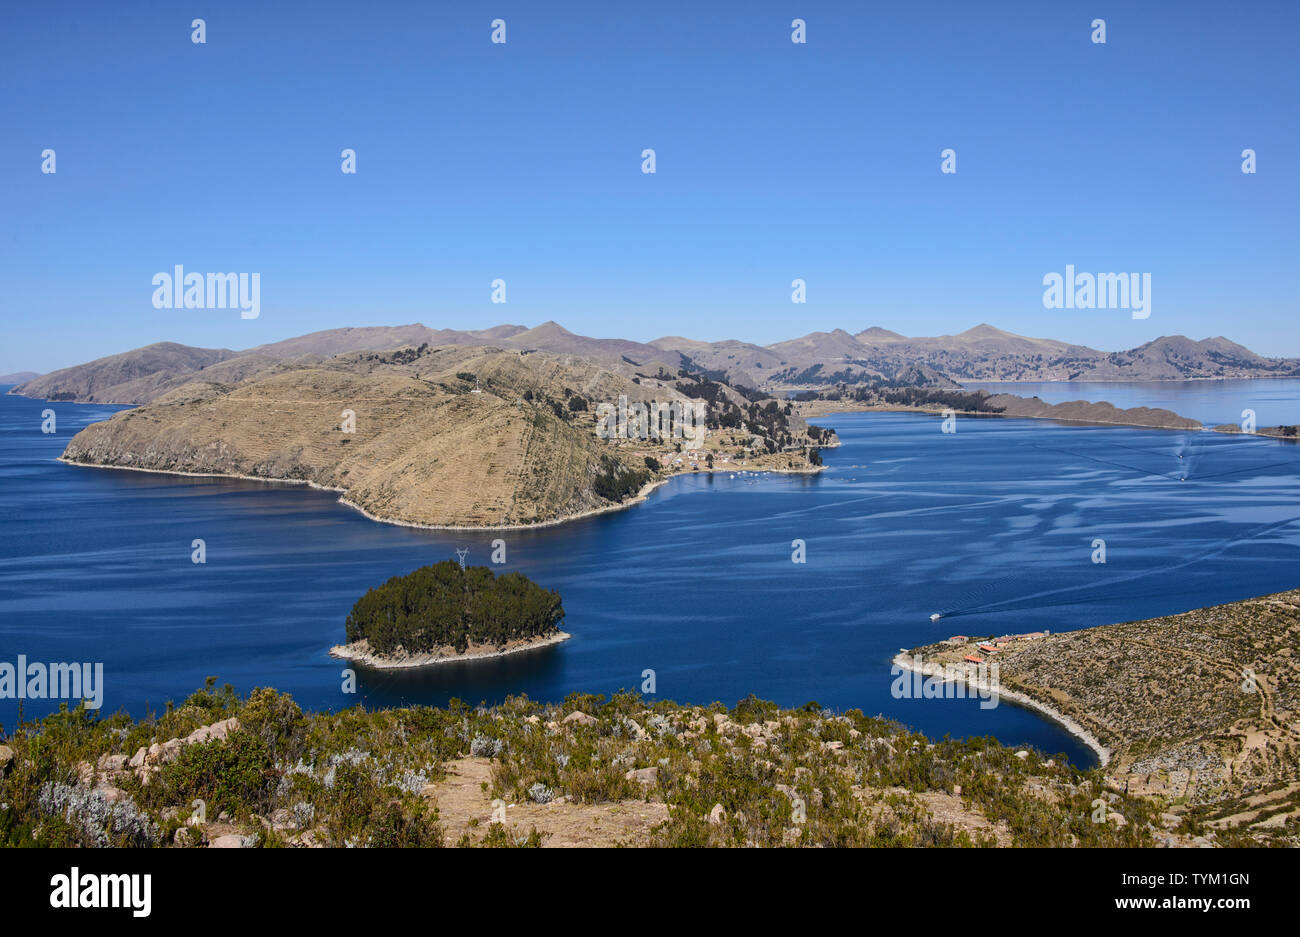 Panoramic view of Lake Titicaca from Isla del Sol, Bolivia Stock Photo